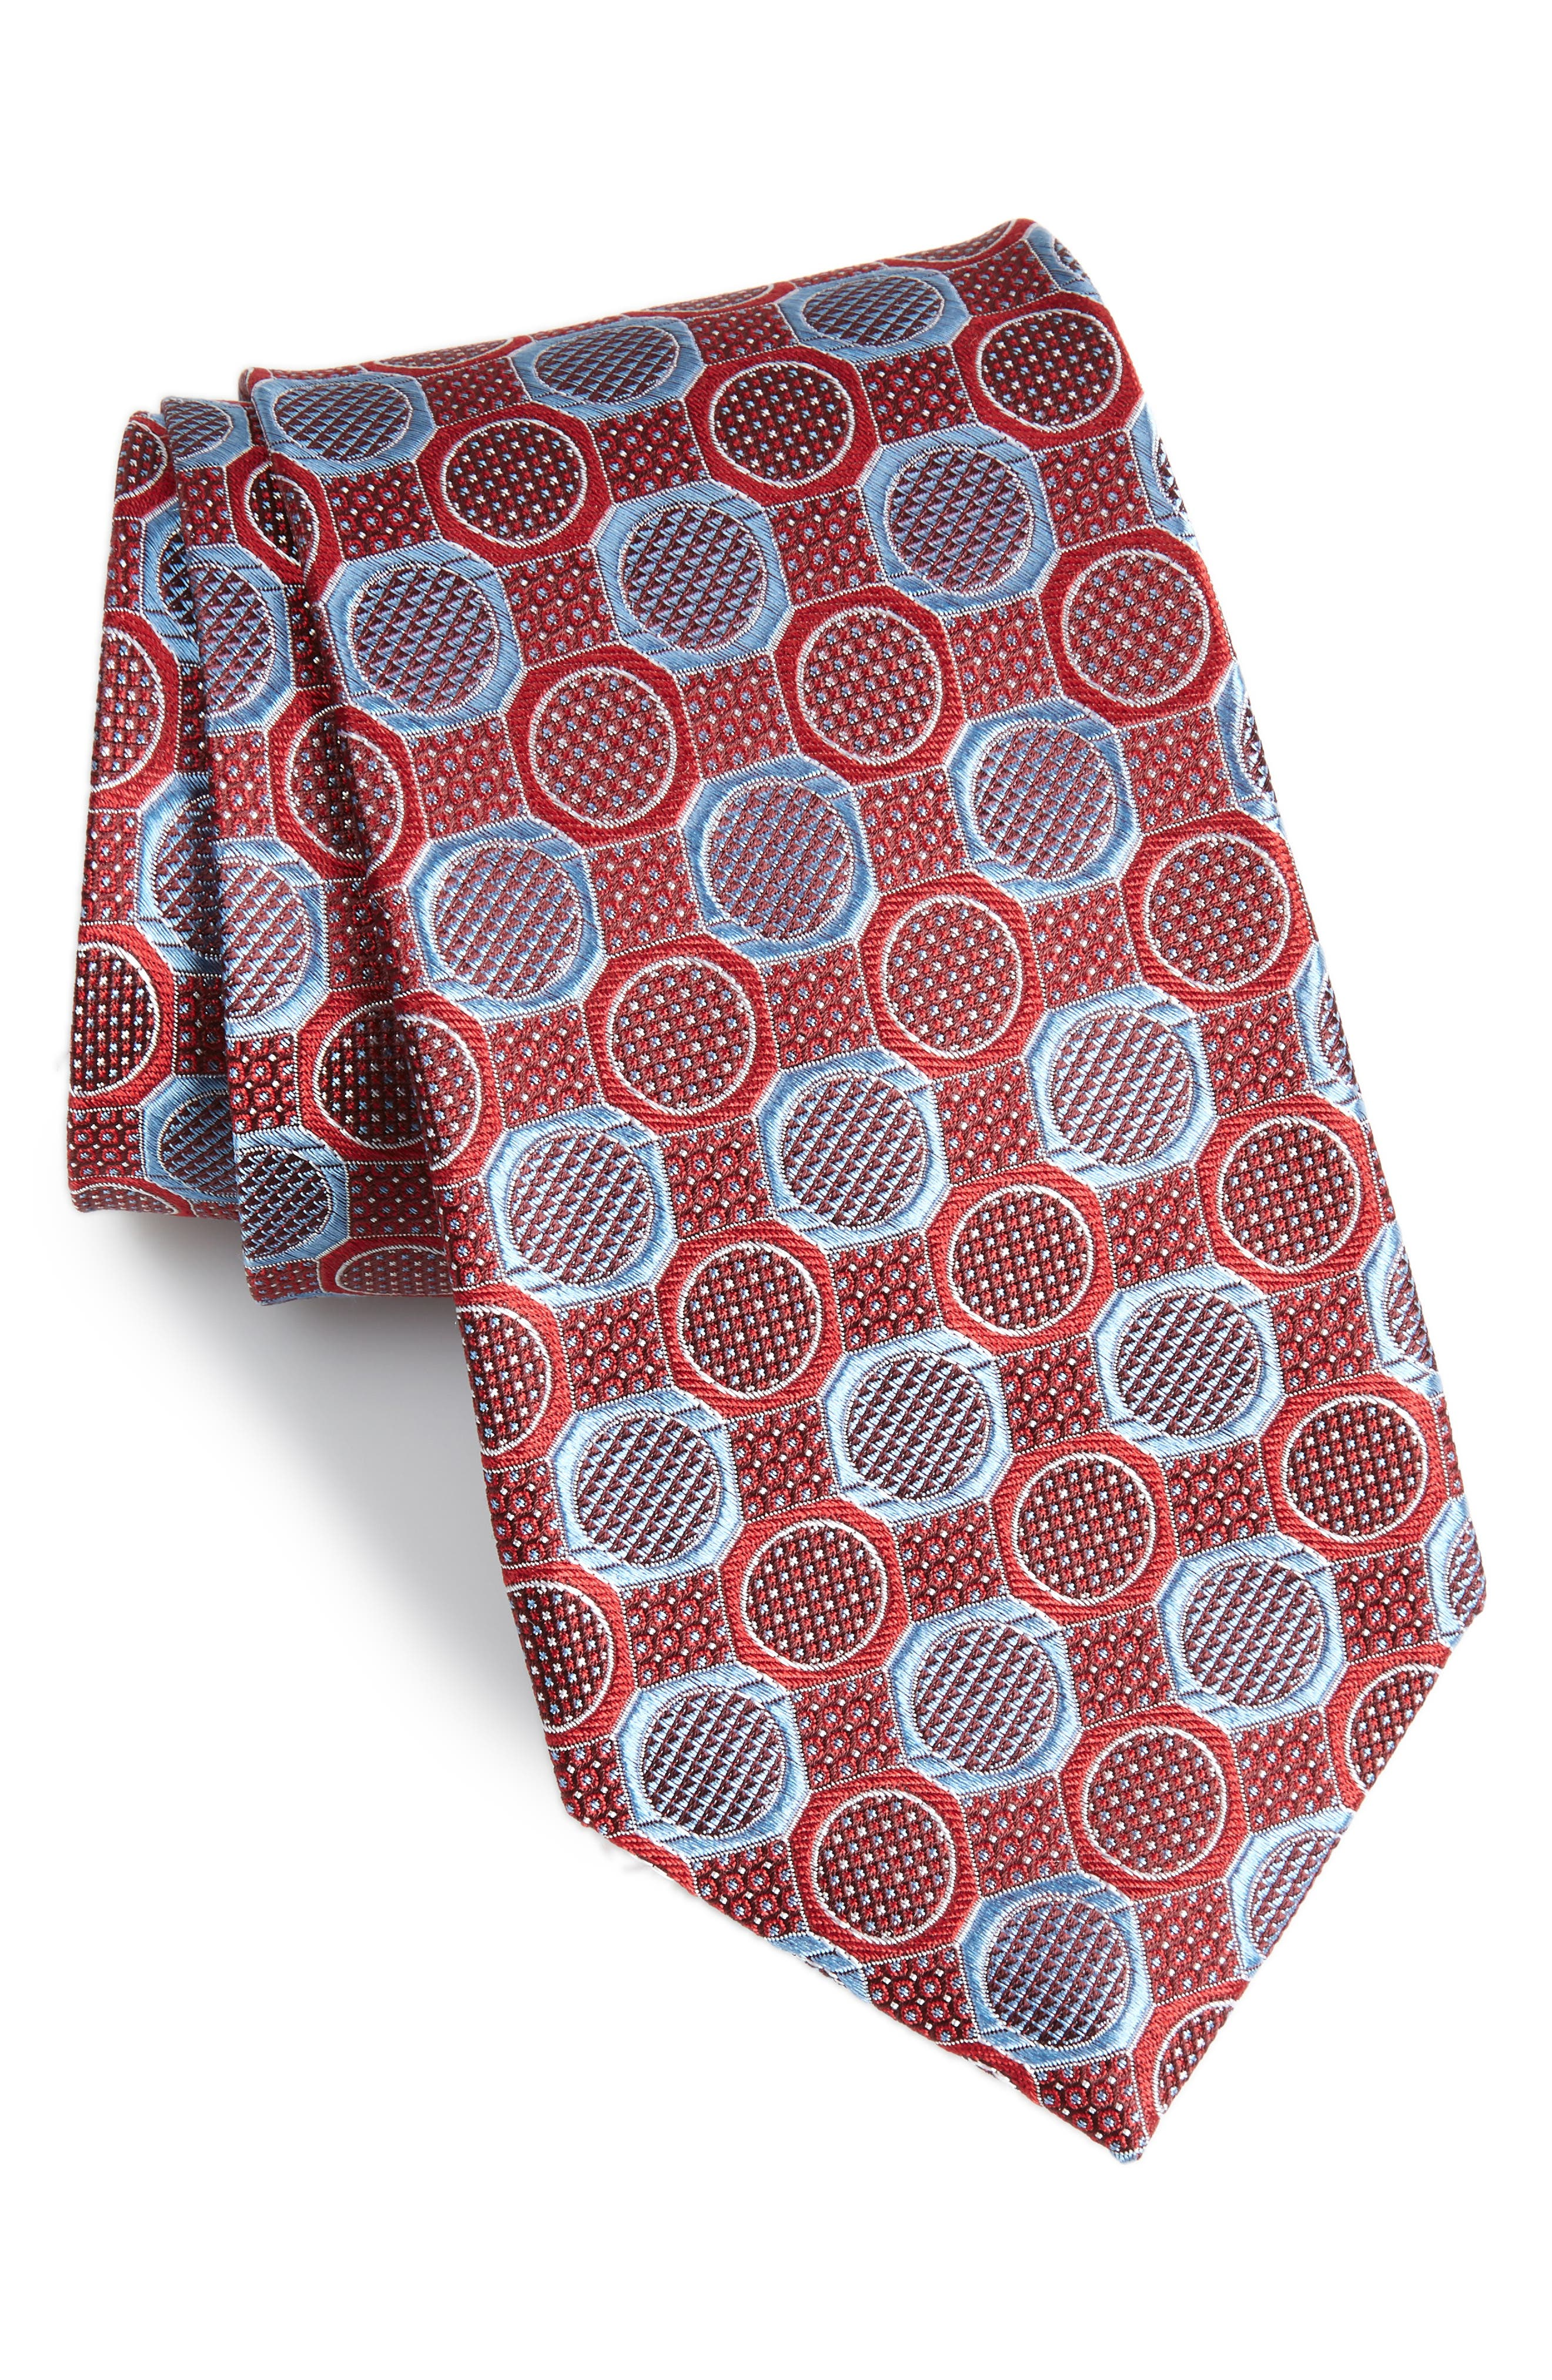 Cammillo Geometric Tie,                             Main thumbnail 1, color,                             Red